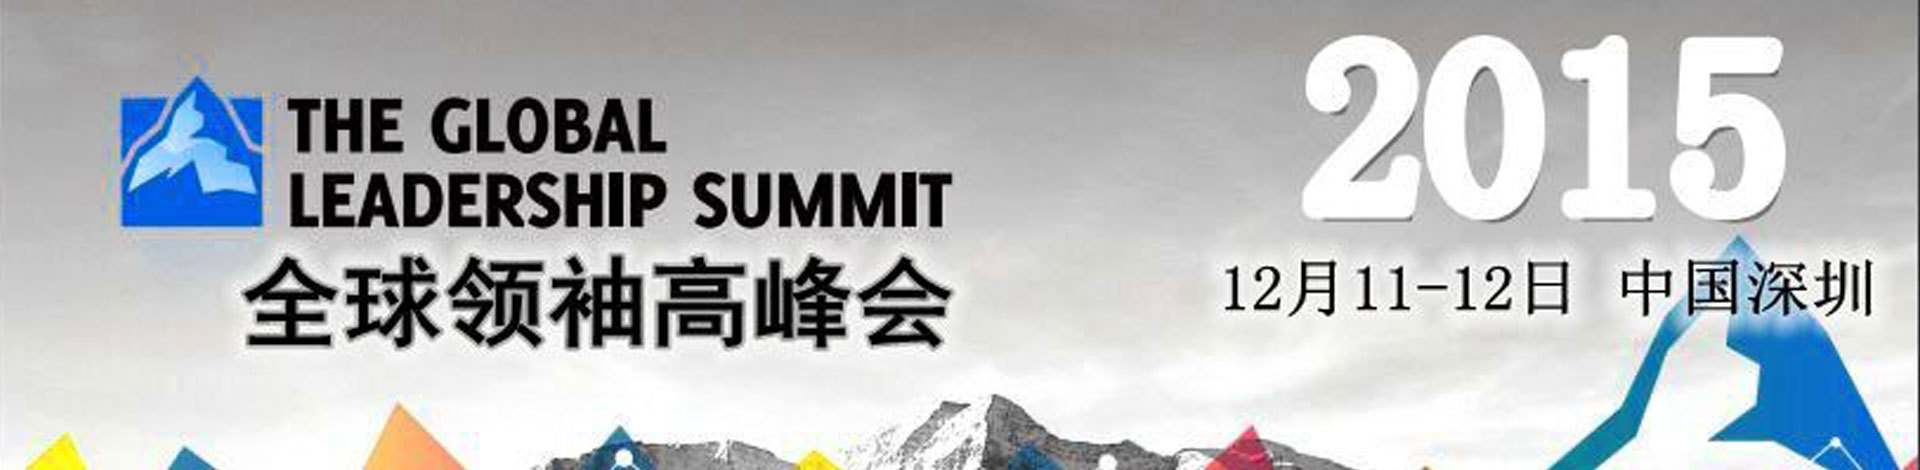 全球领袖高峰会(The Global Leader Summit)